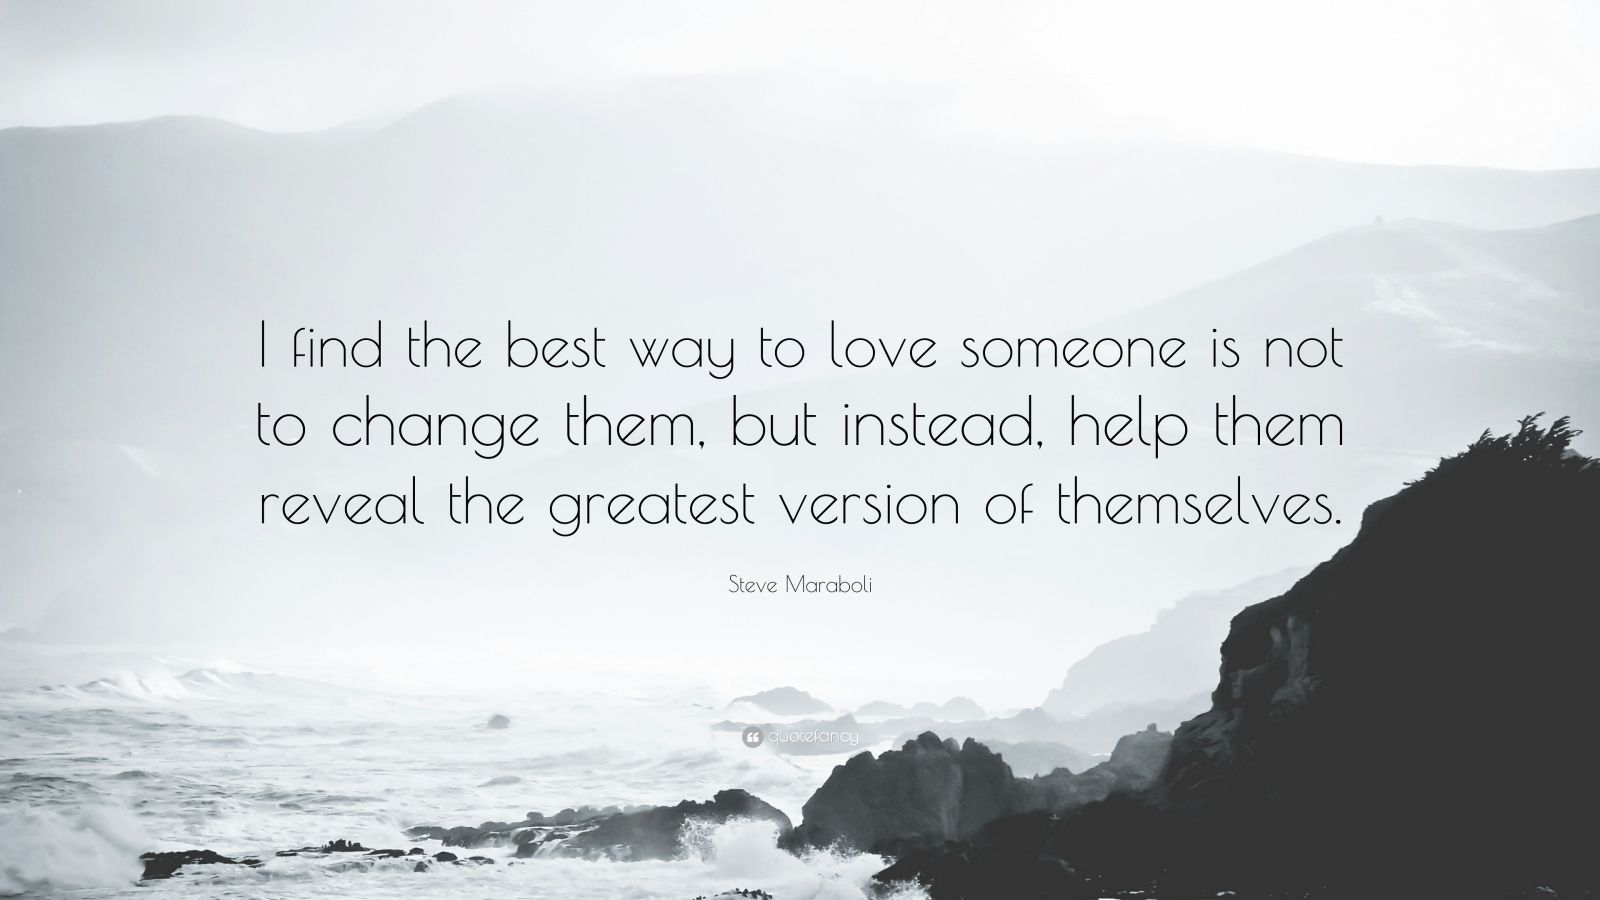 22Love Quotes That Depict True Love